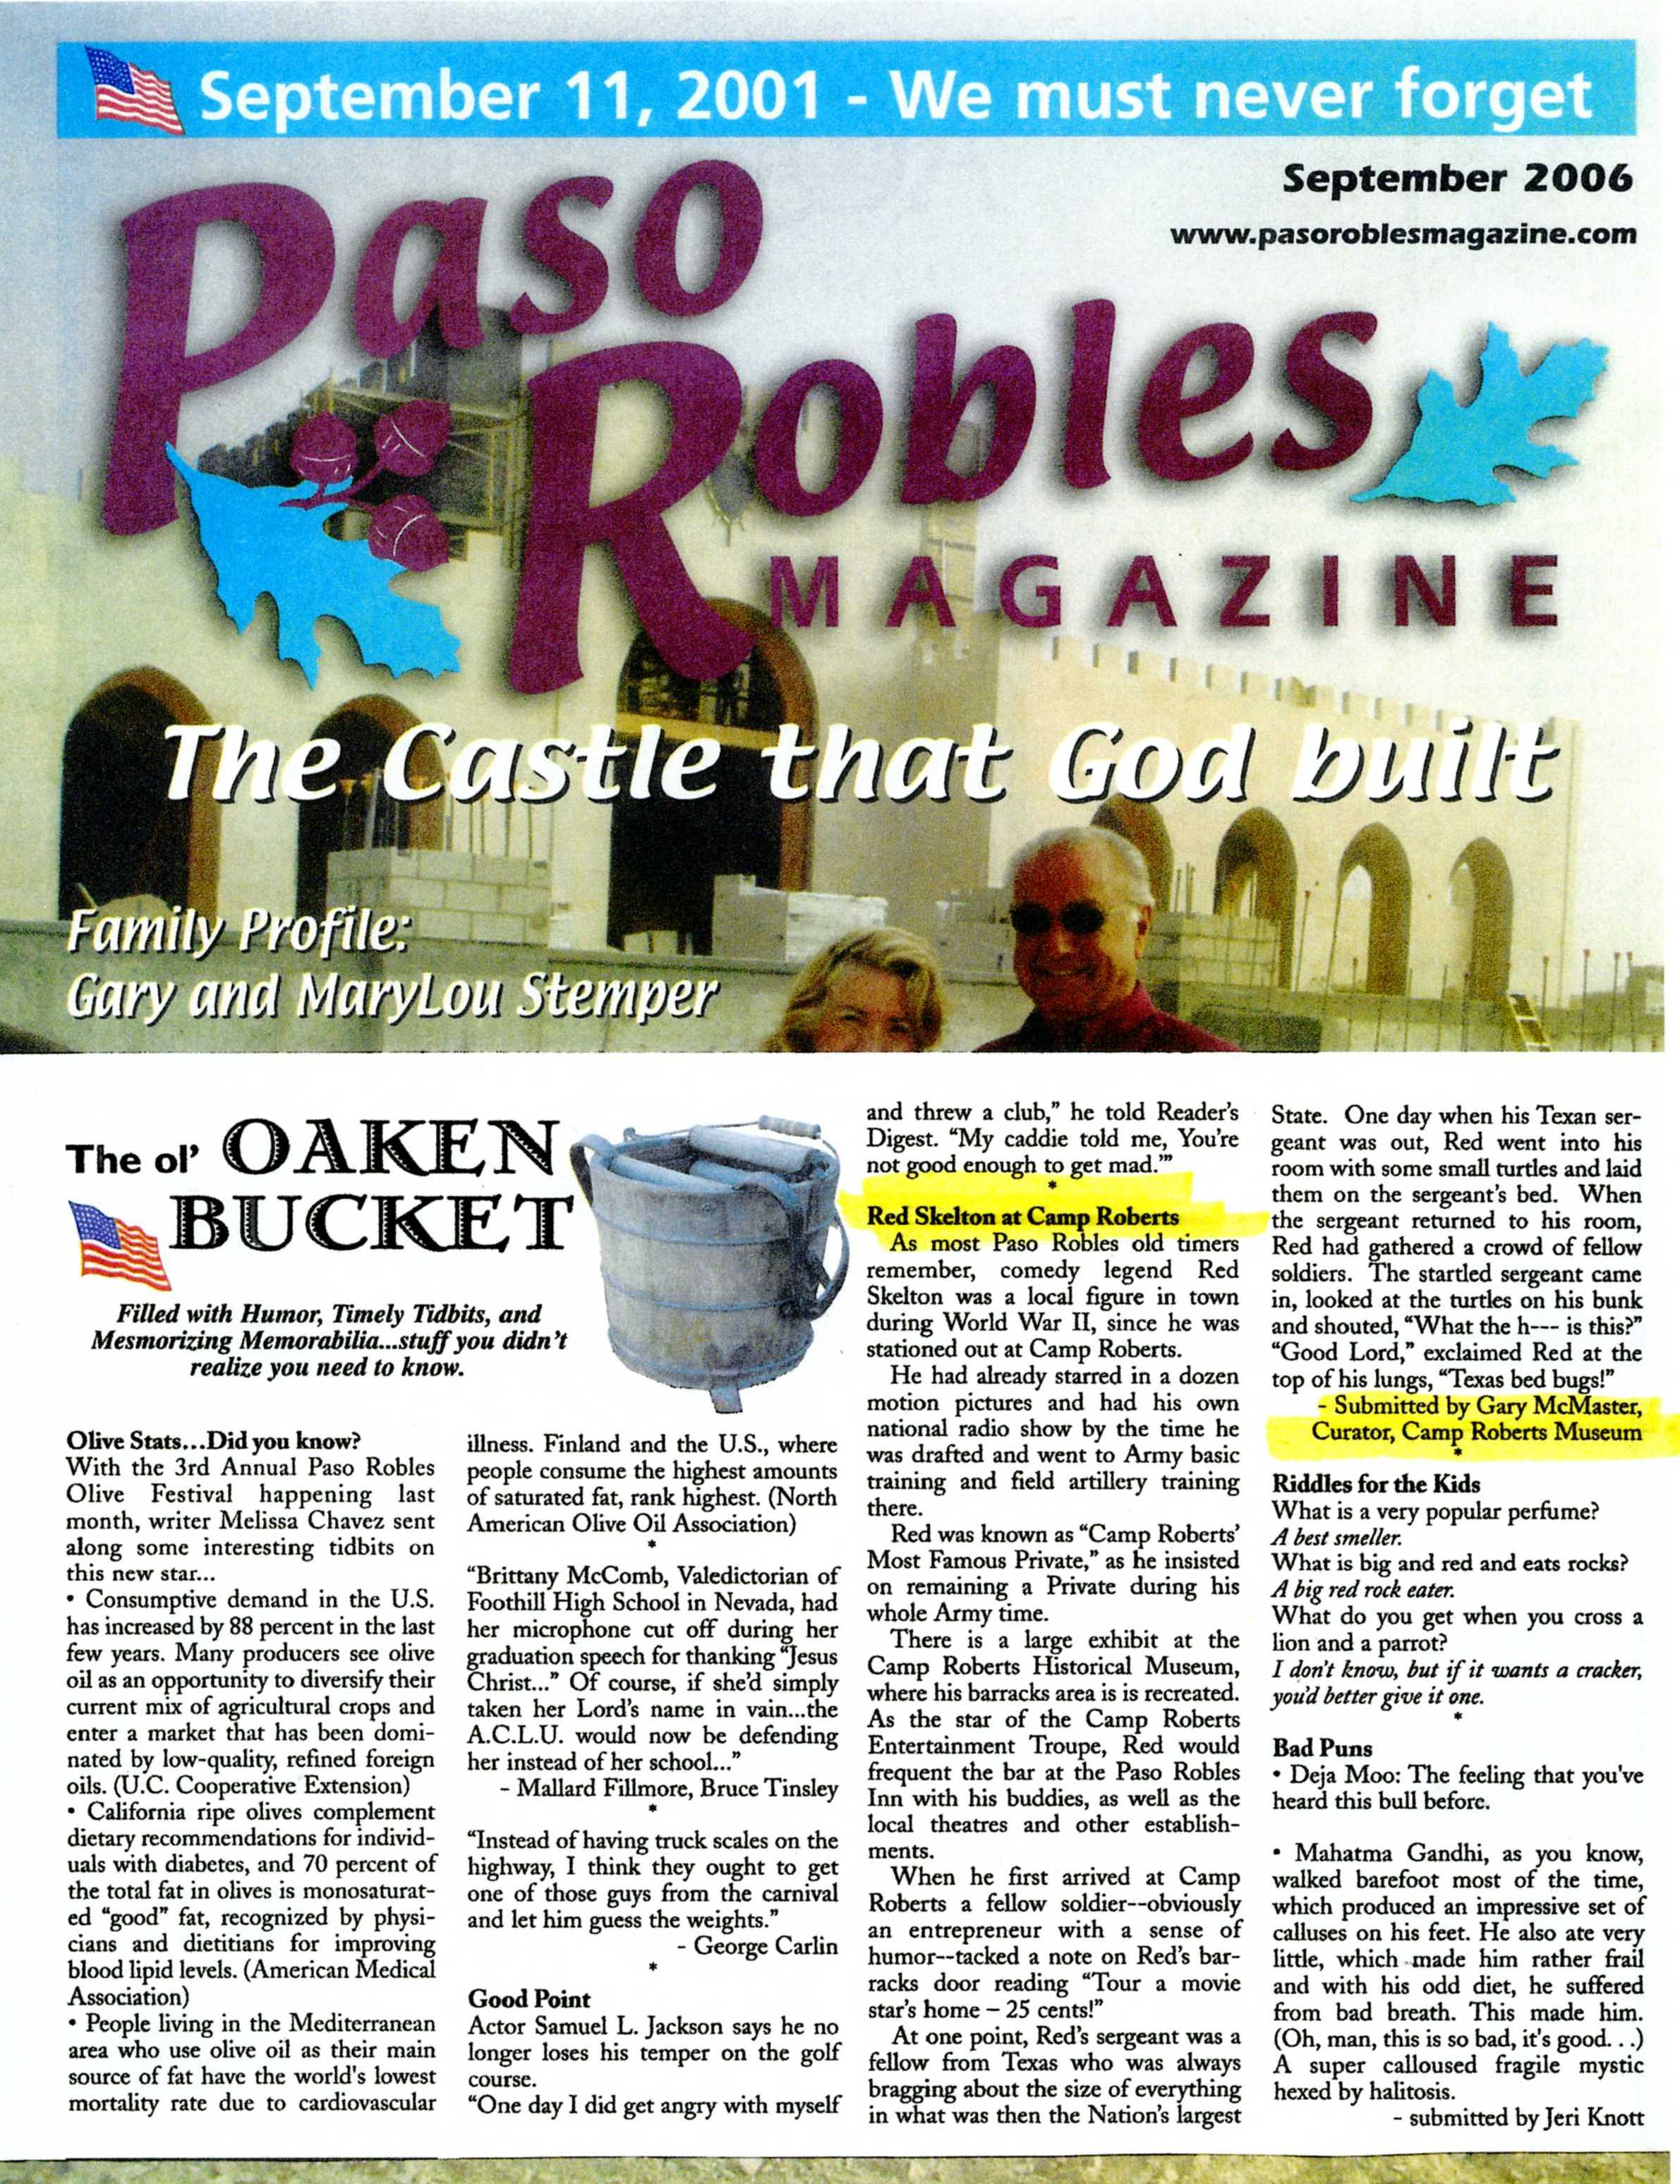 Red Skelton at Camp Roberts - Paso Robles Magazine, SEP 2006